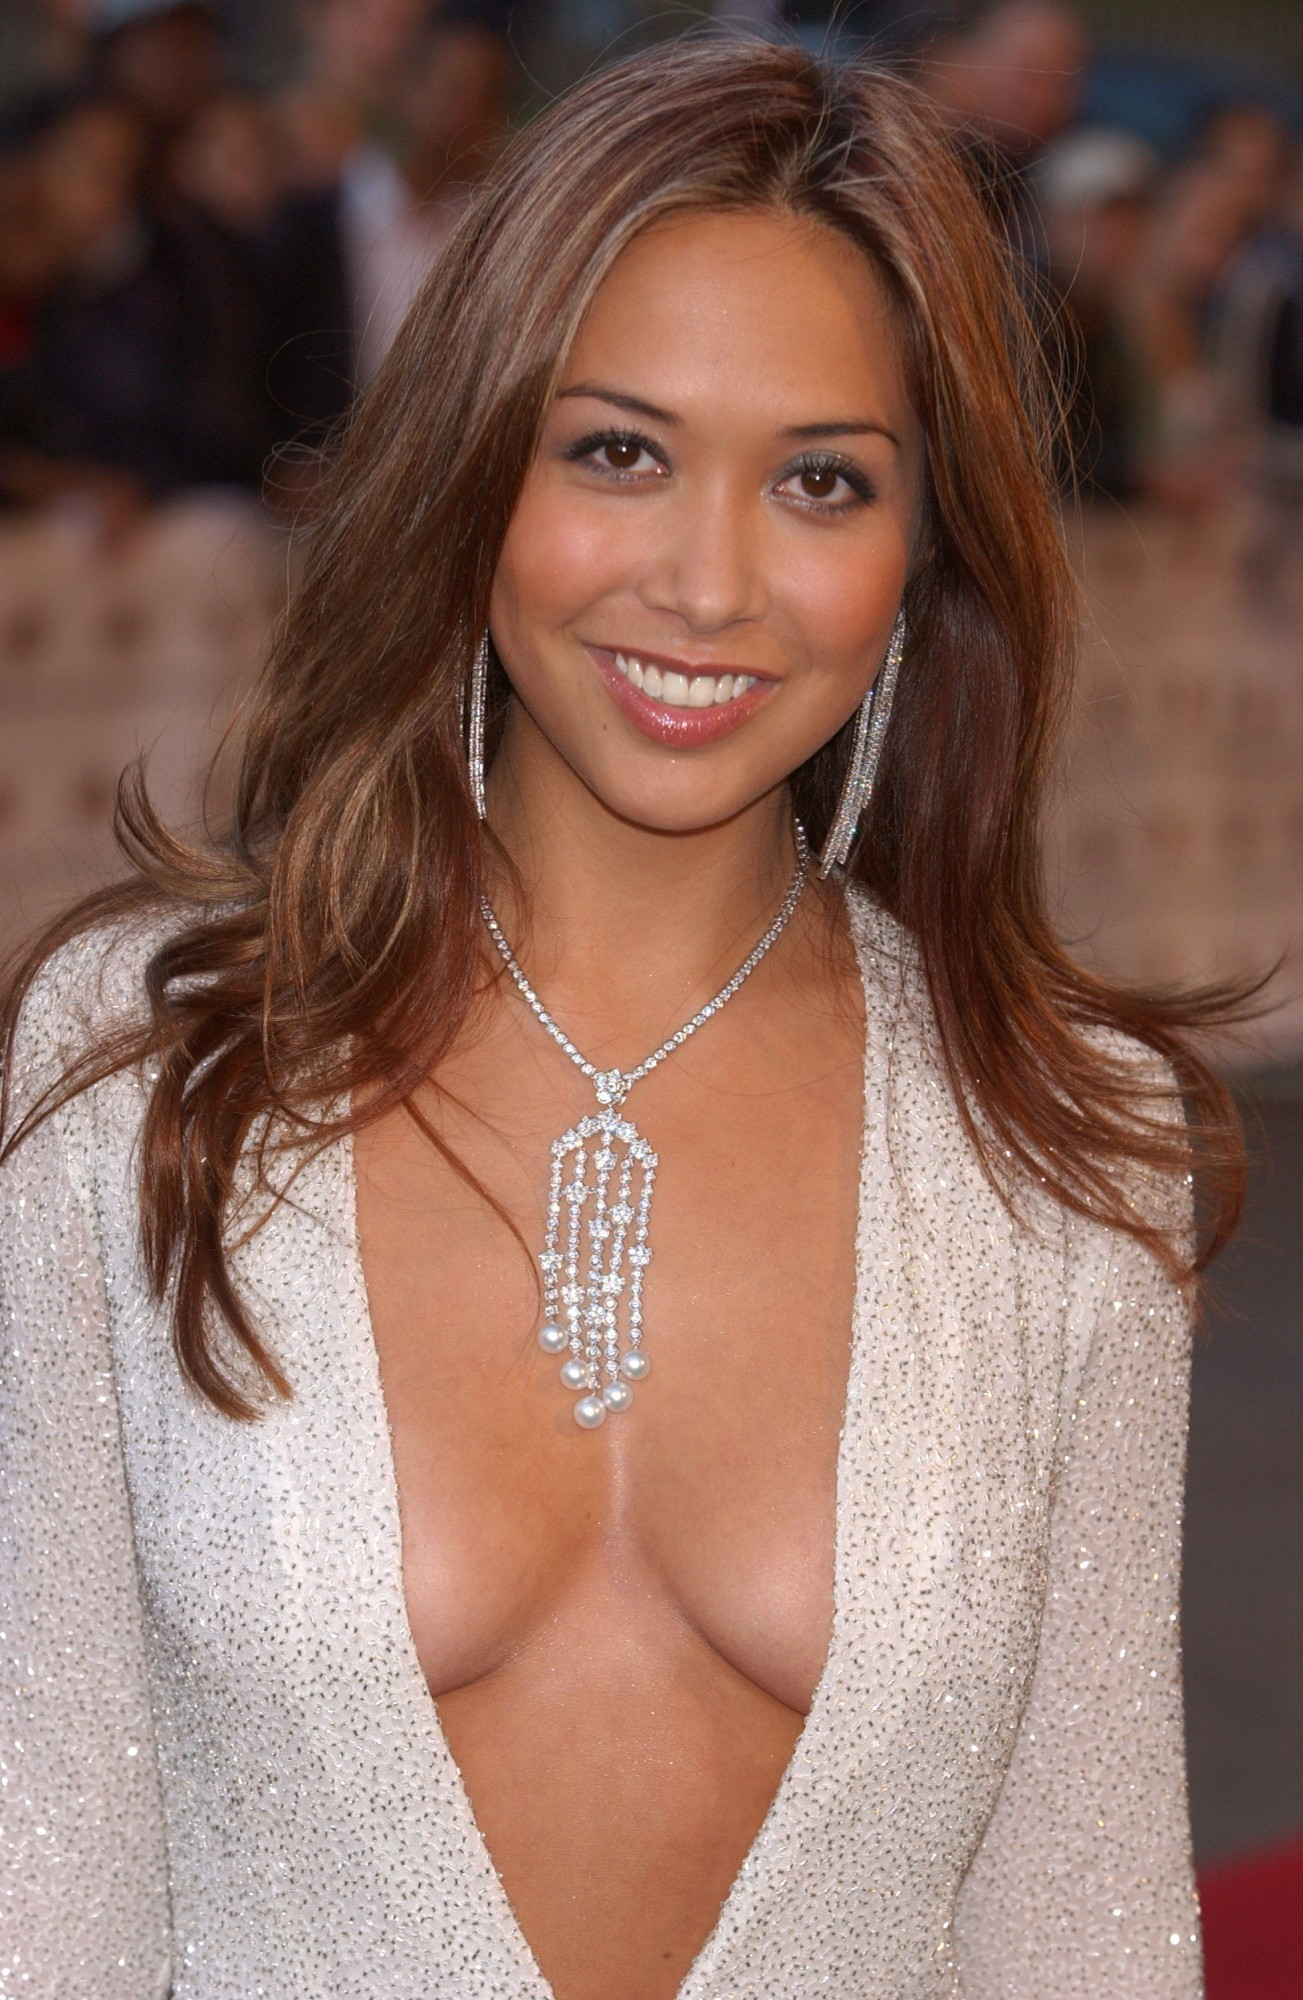 Myleene Klass Body Measurements and Net Worth - Celebrity ...